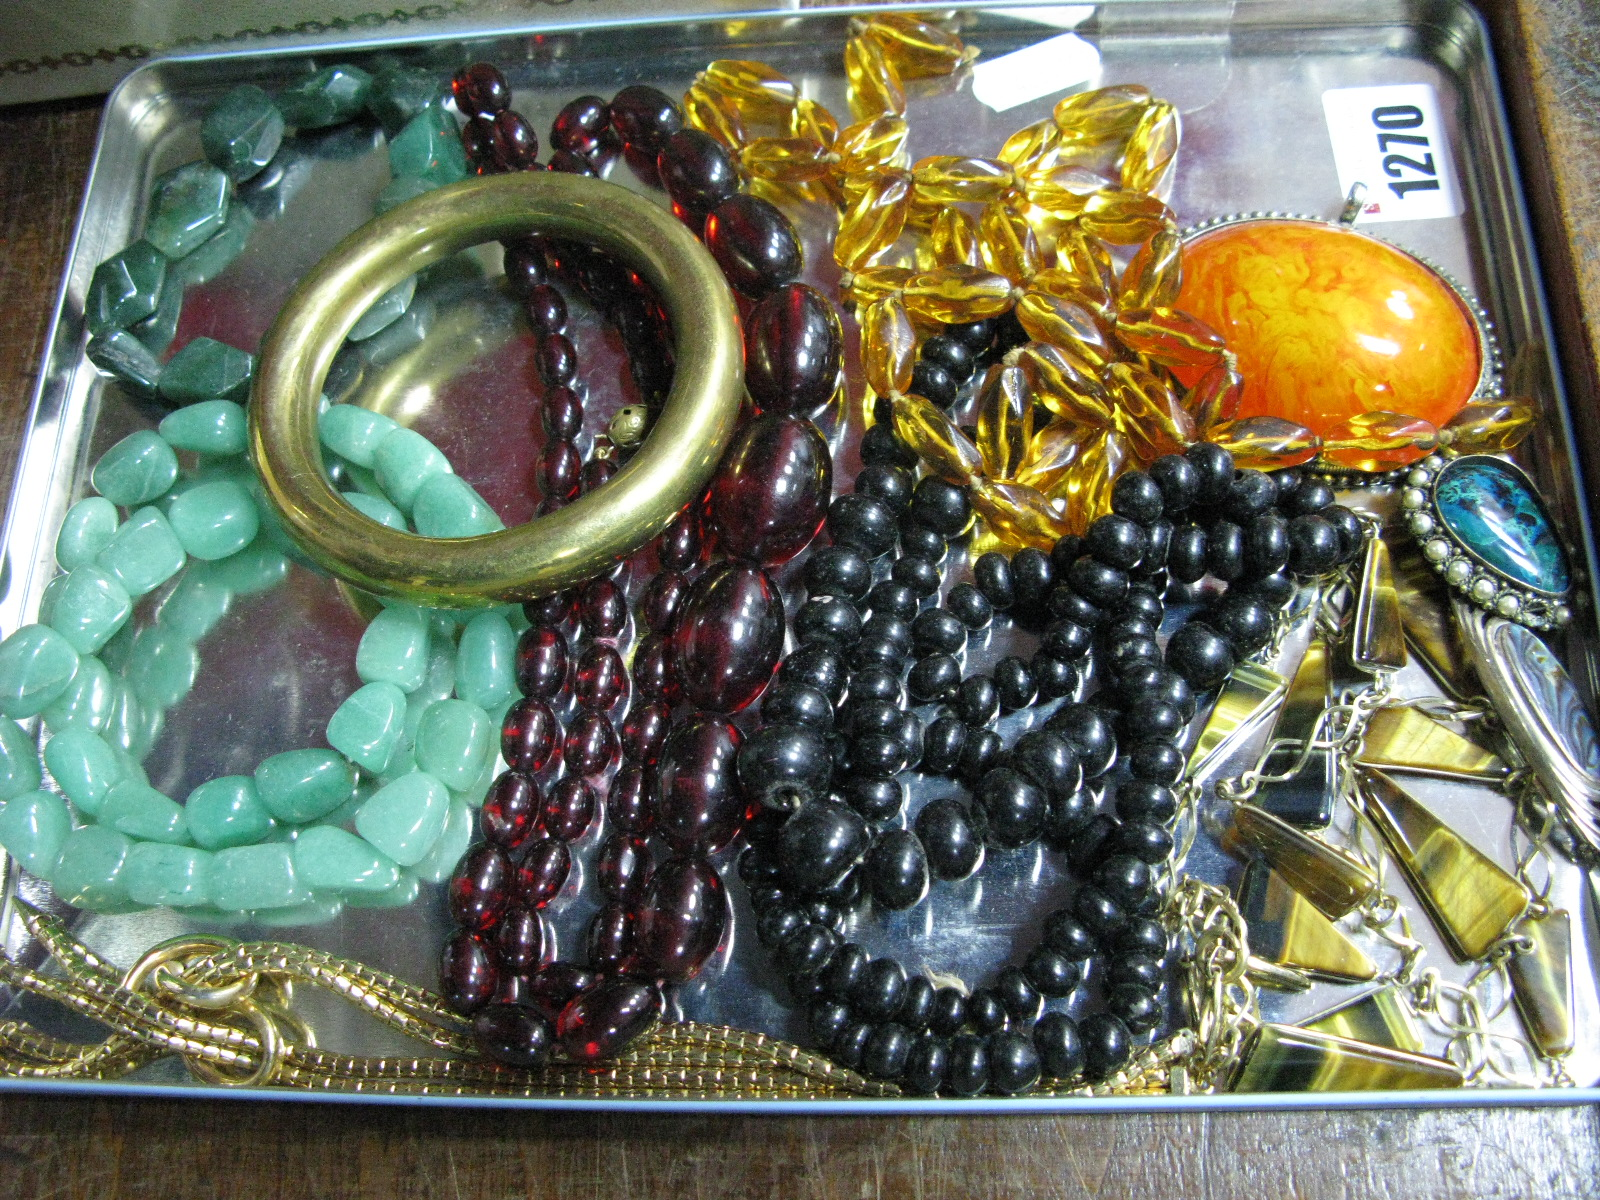 Lot 1270 - Grosse 1958 German Vintage Costume Necklace, bead necklaces, bangle, etc.